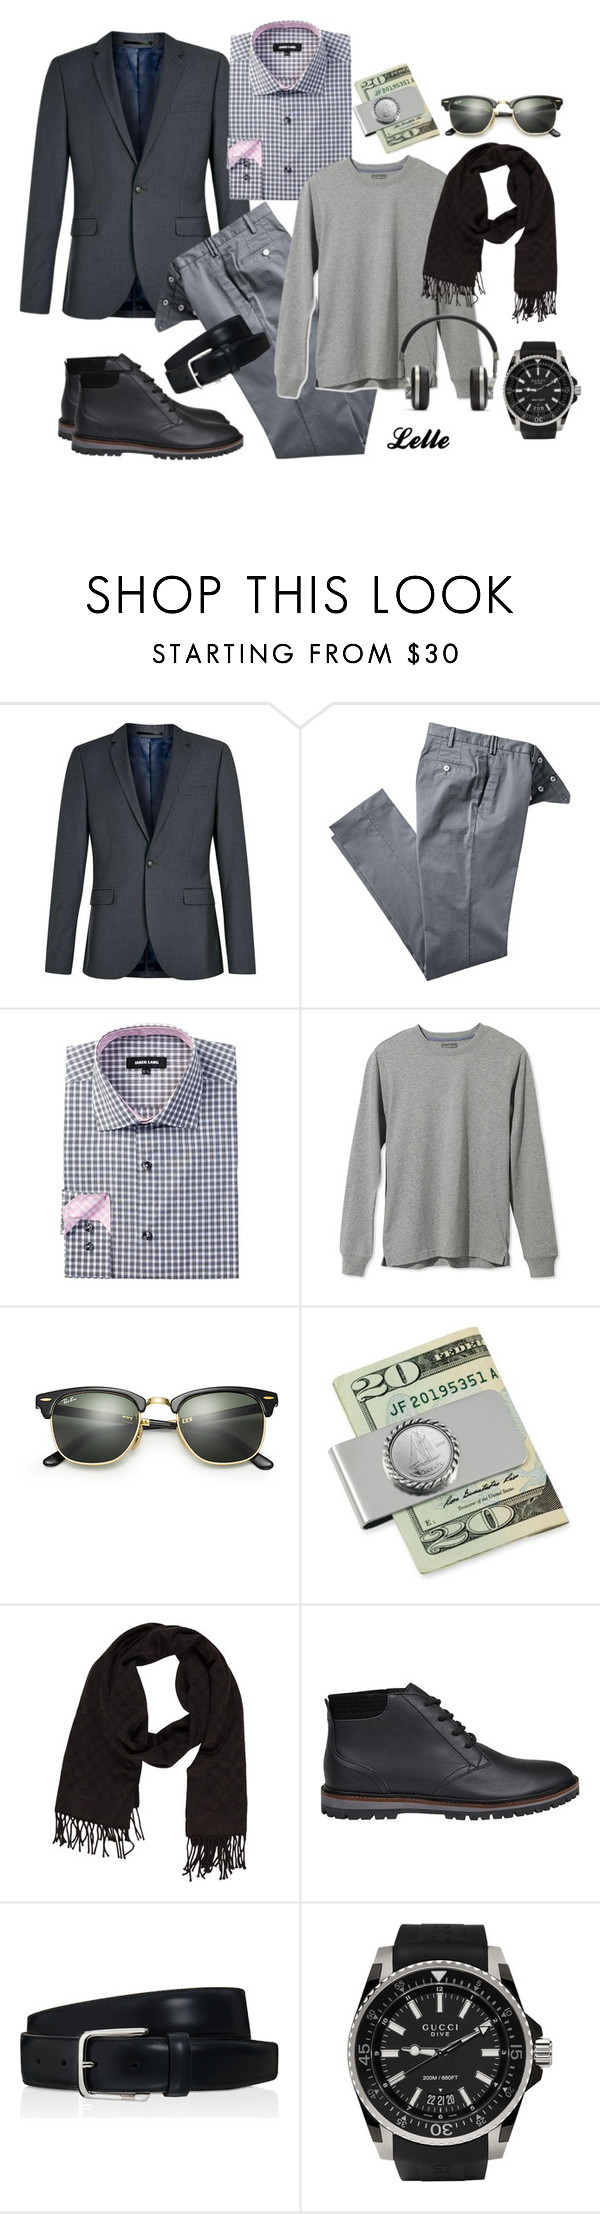 """""""TOPMAN Grey Skinny Fit Suit Jacket"""" by lellelelle ❤ liked on Polyvore featuring Topman, Jared Lang, L.L.Bean, Ray-Ban, American Coin Treasures, Gucci, Lacoste, Tod's, Master & Dynamic and men's fashion"""